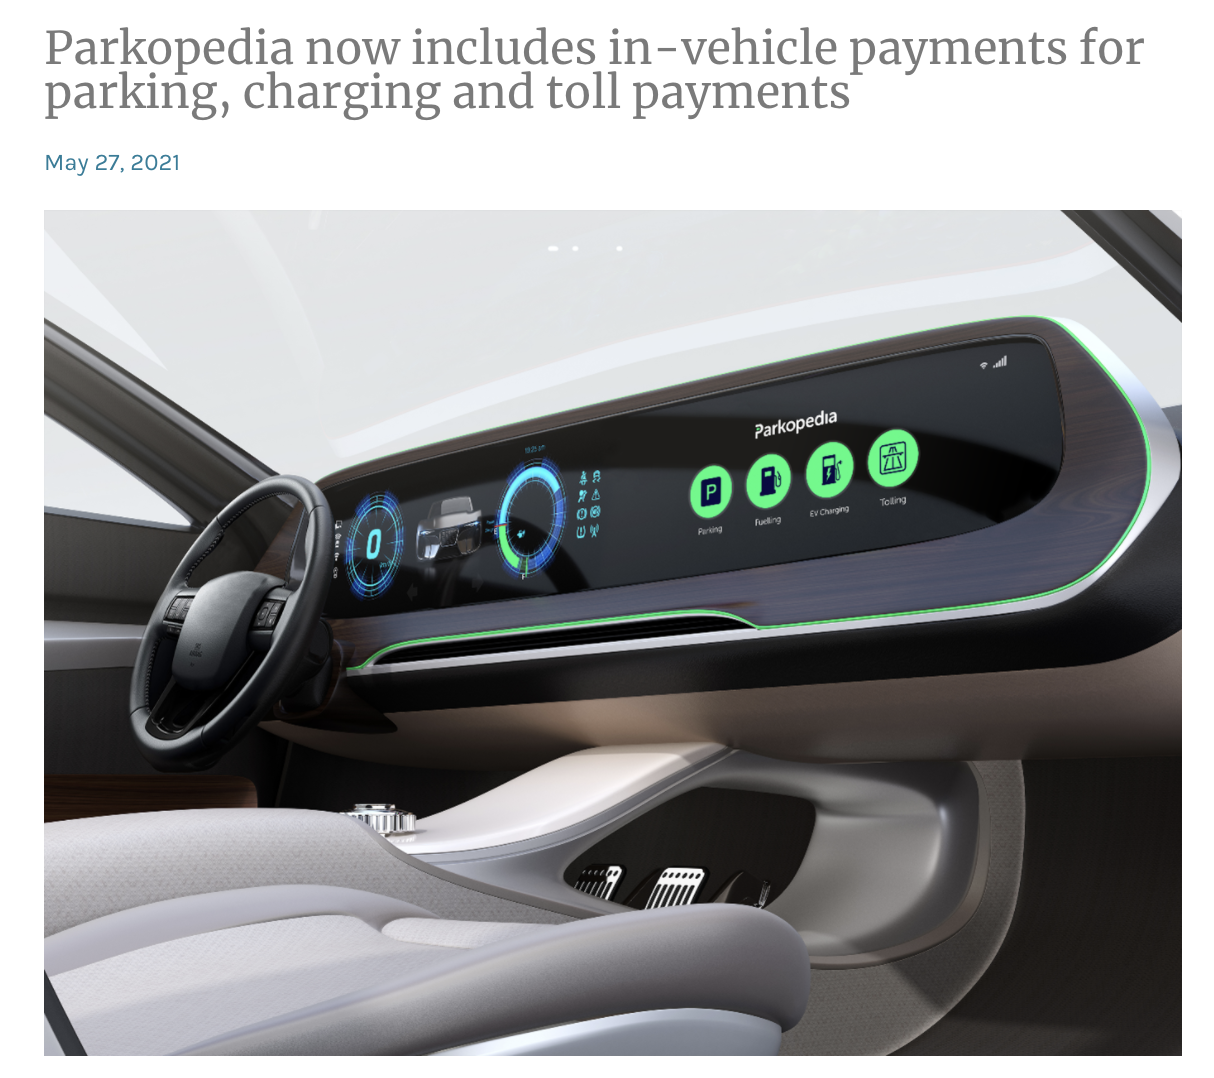 Electric Road - Payment Platfrom Coverage